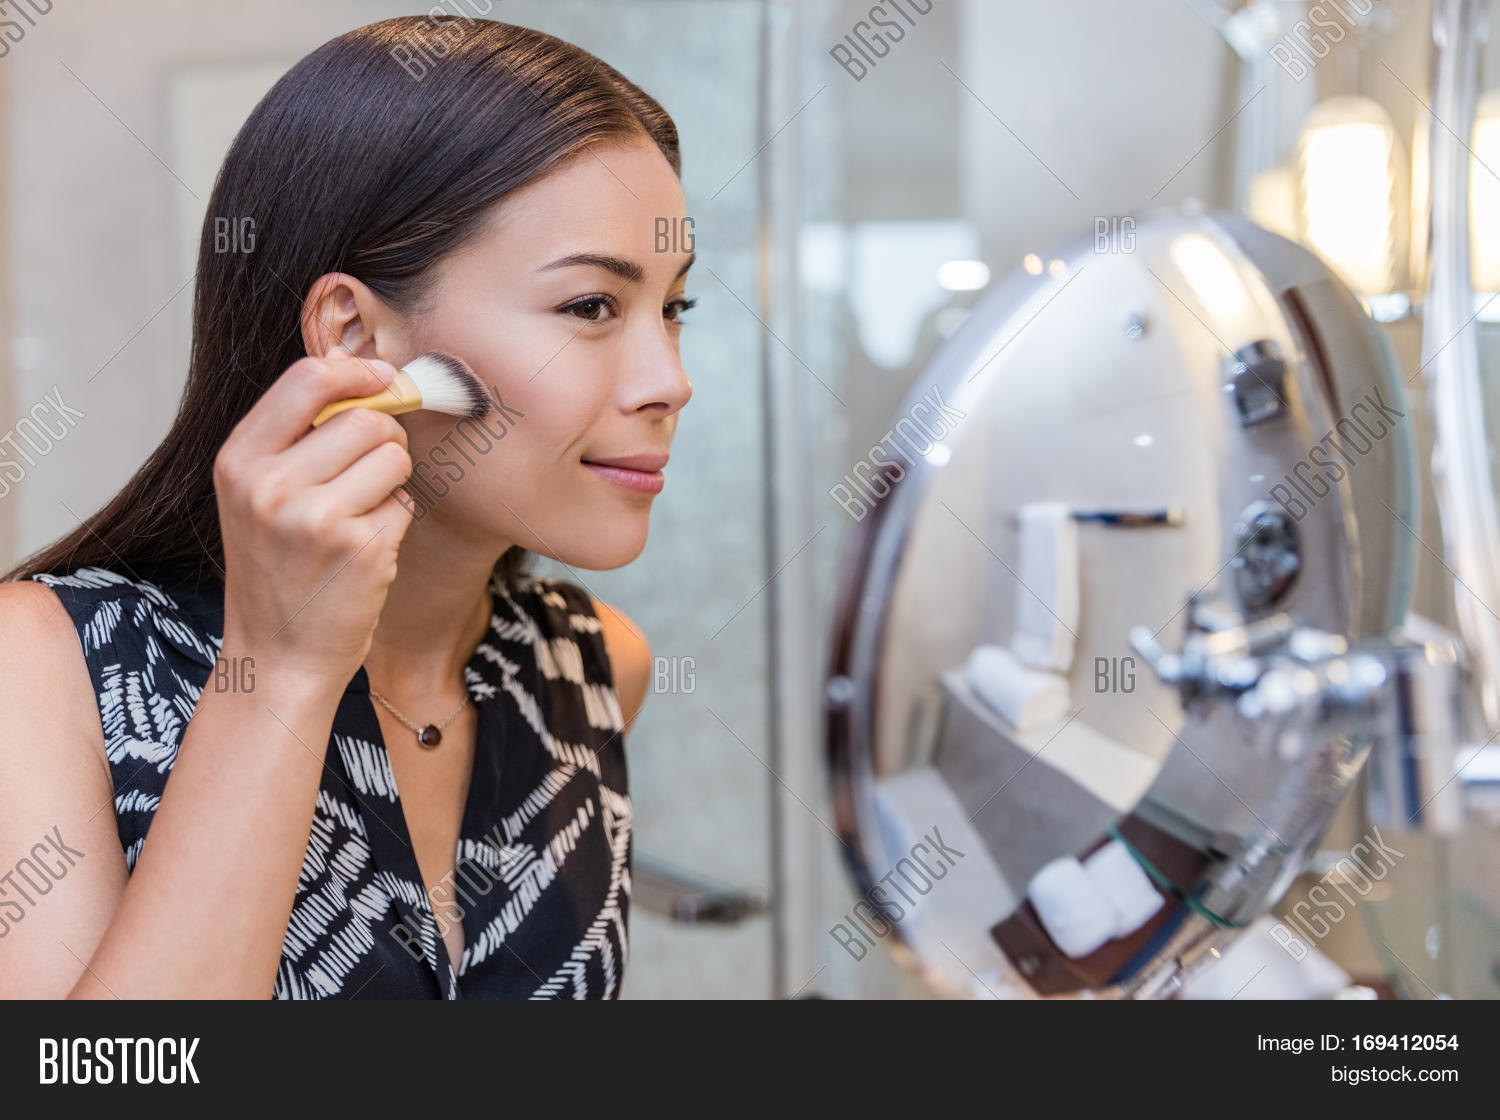 Asian Woman Putting Makeup In Home Bathroom Using A Contour Brush To Apply  Bronzer Powder Under